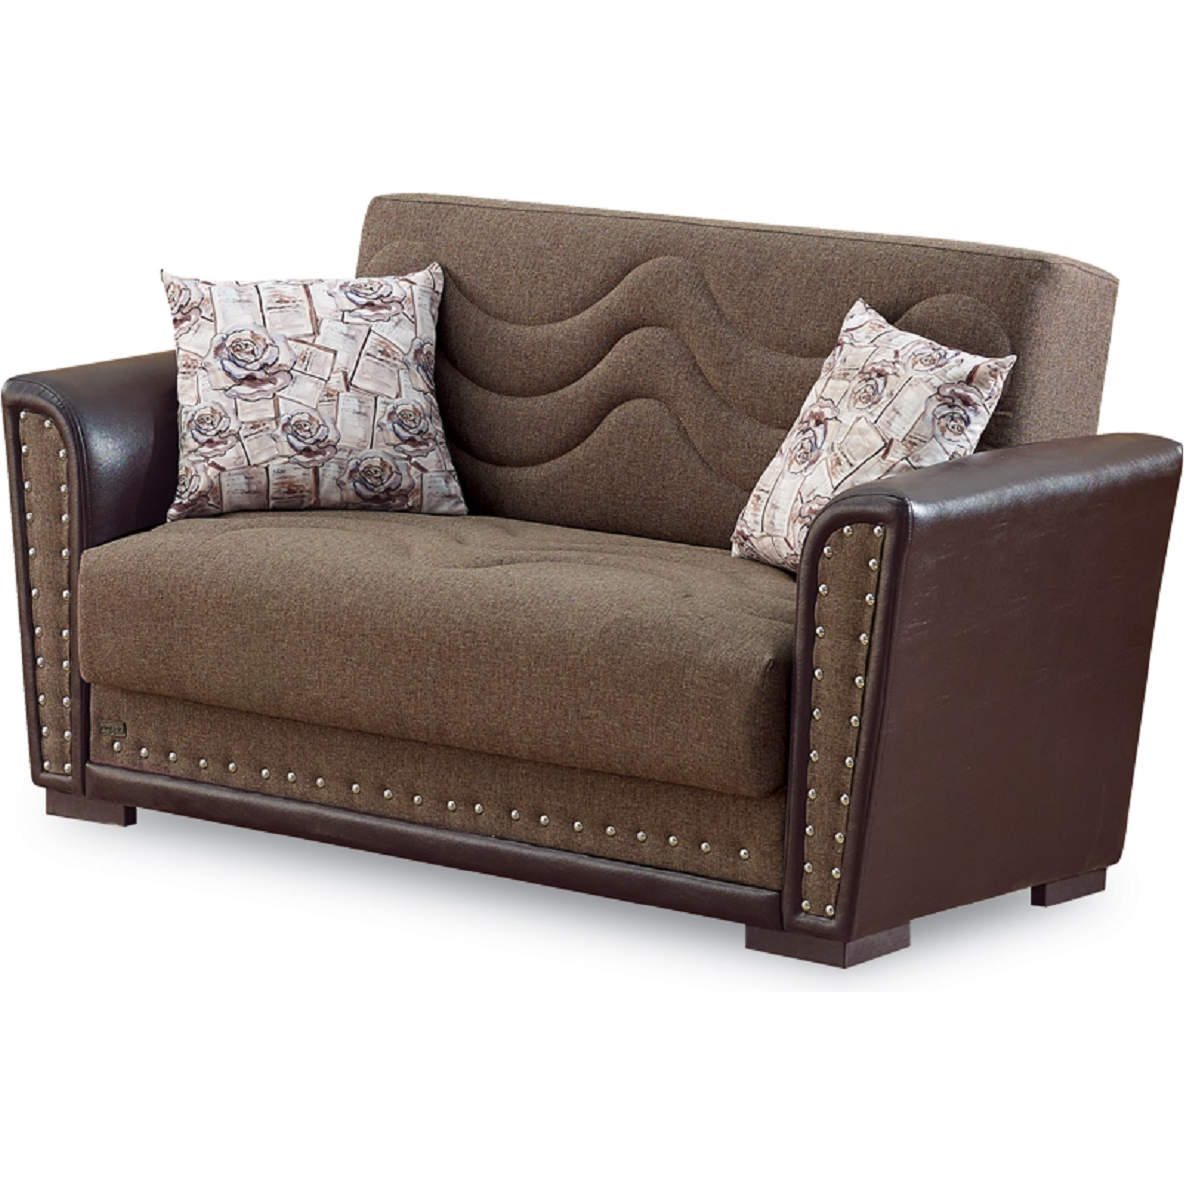 Toronto Convertible Loveseat in Brown Chenille & Leatherette by Empire  Furniture